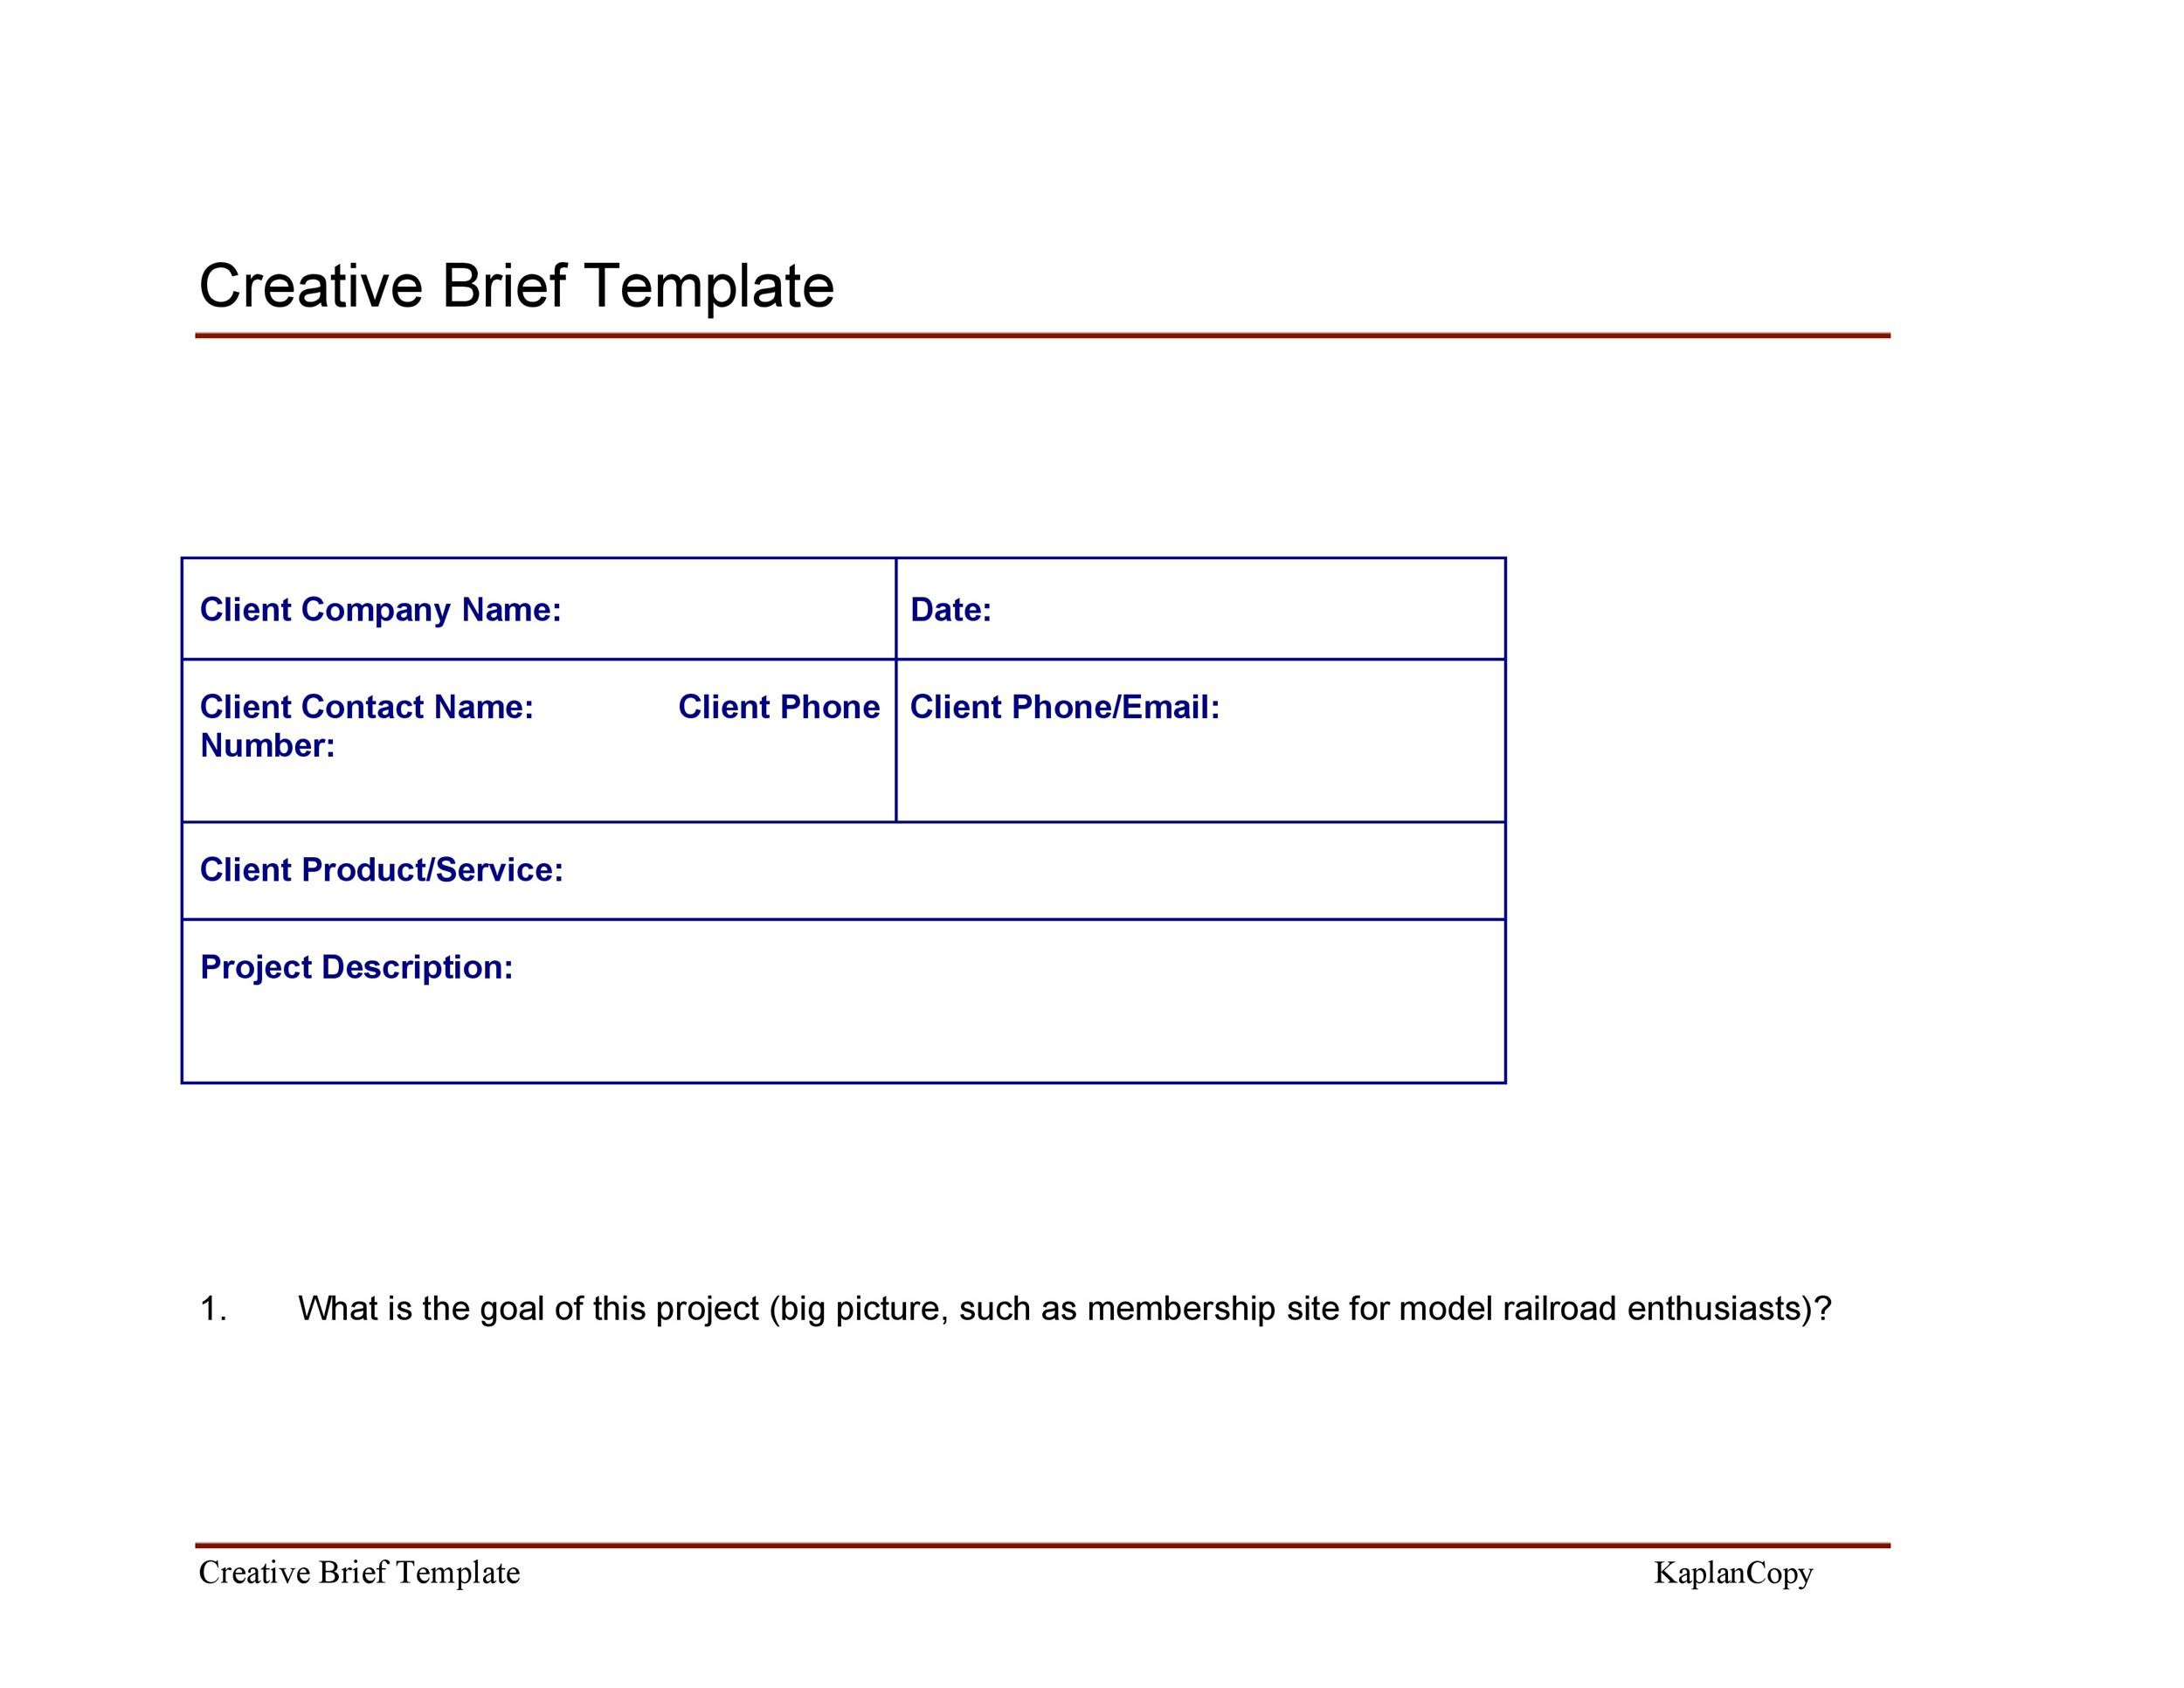 Free Creative Brief Template 30